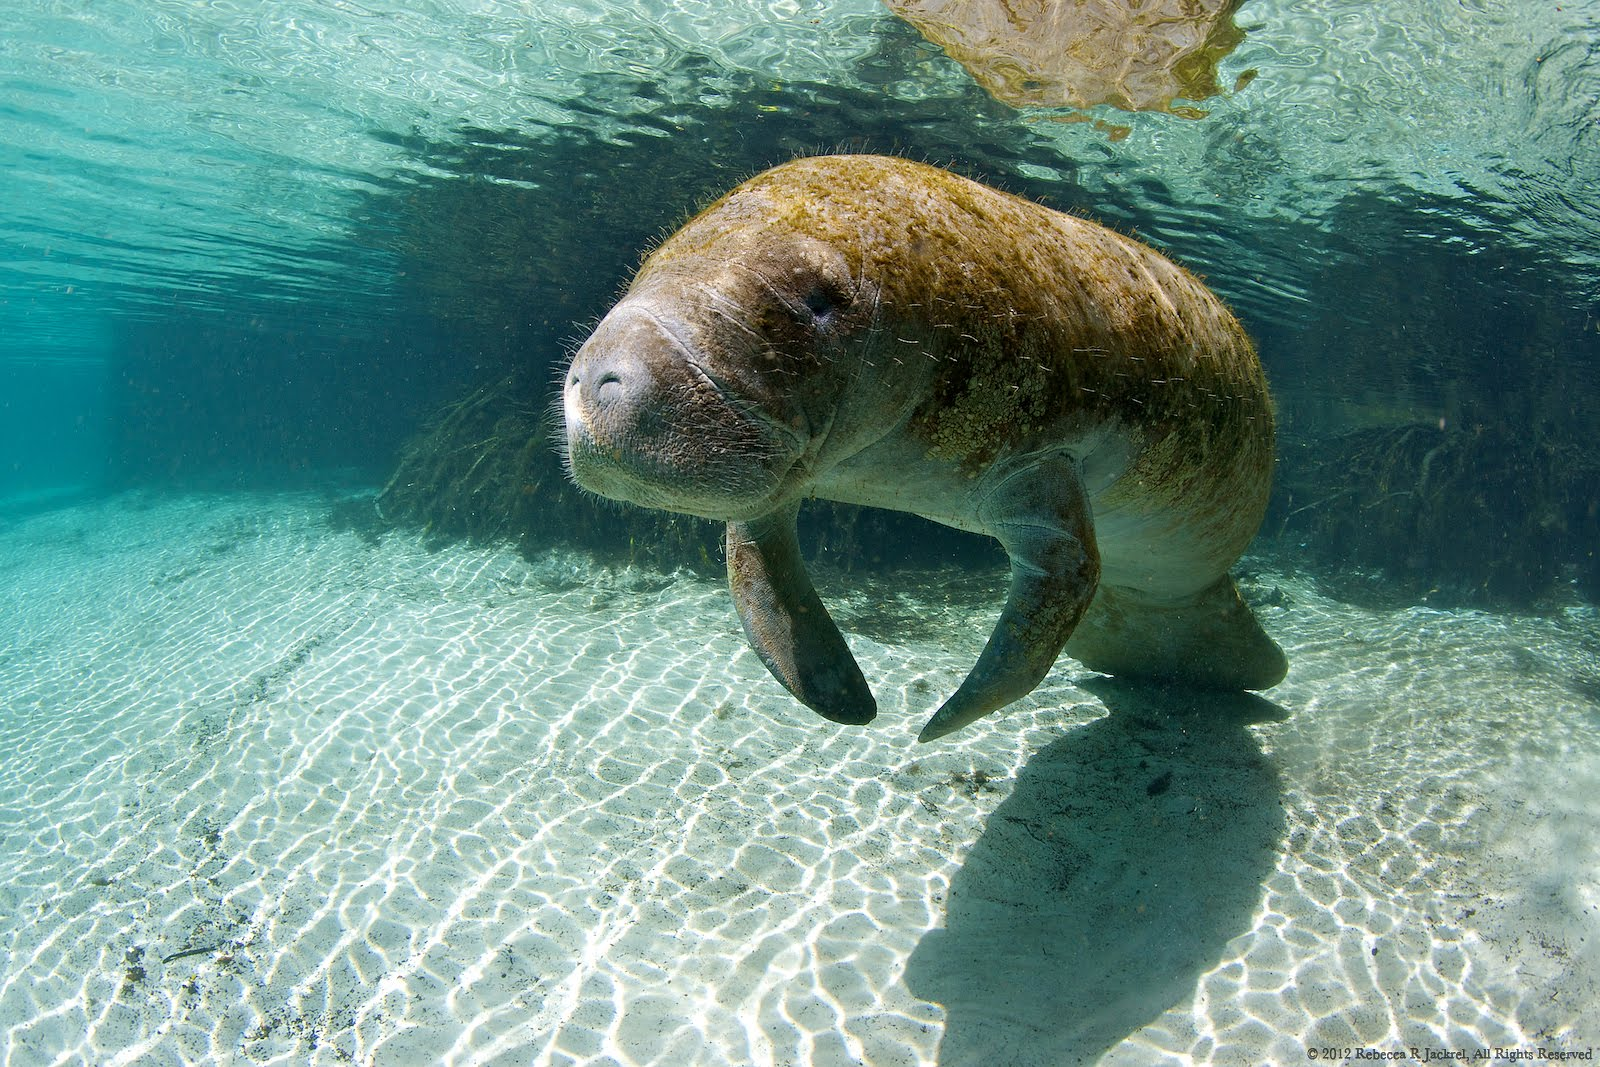 manatee essay As florida's human population increases and waterfront development continues,  manatees are losing the habitats they rely on to survive.